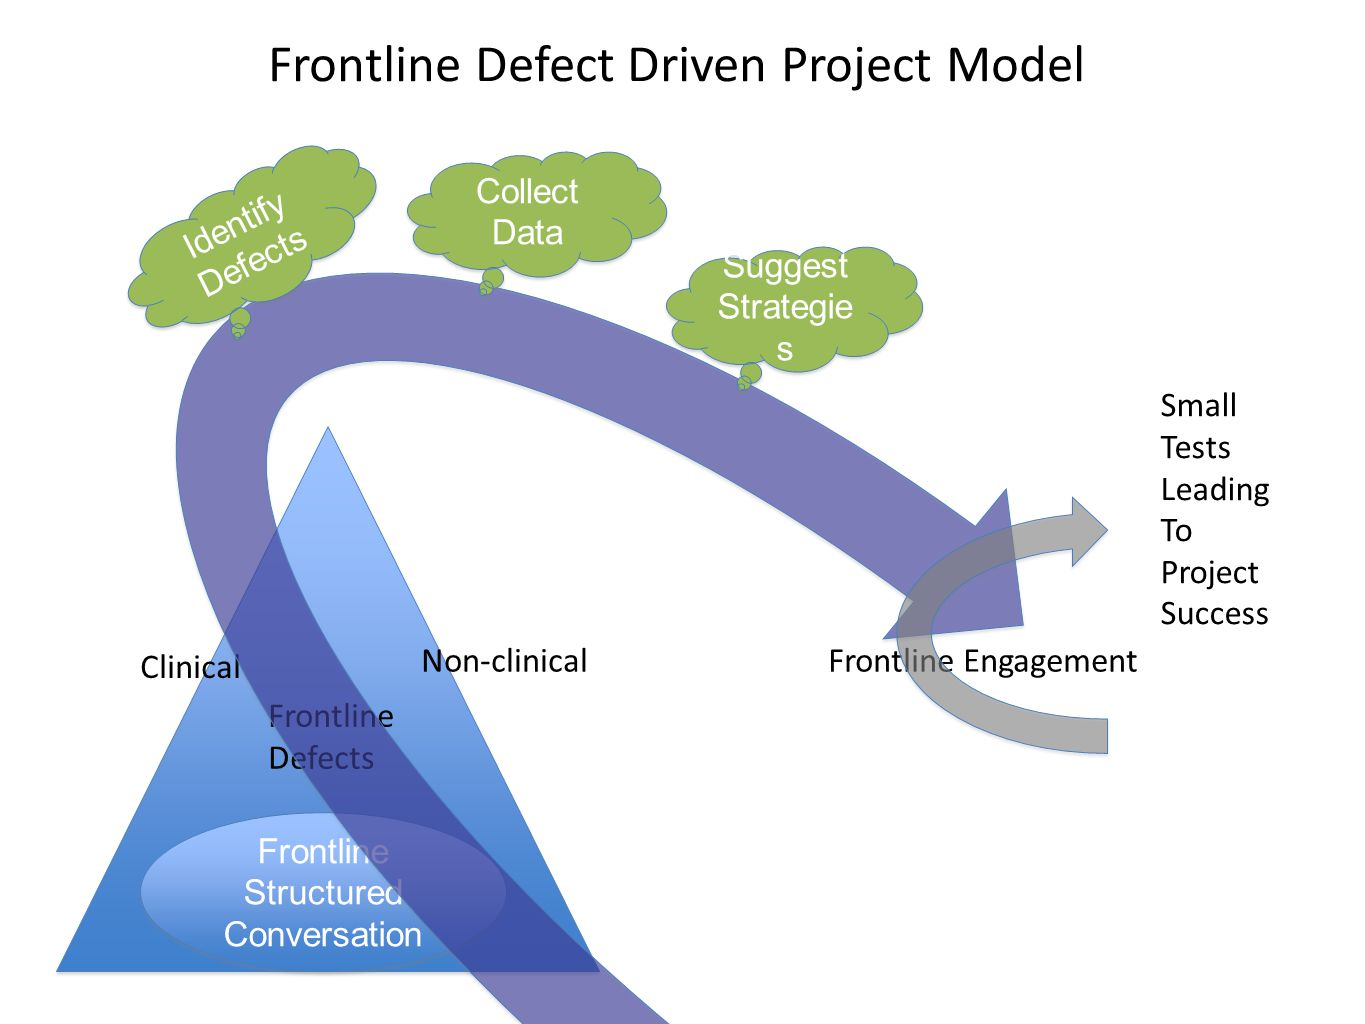 Frontline Structured Conversation Frontline Structured Conversation Frontline Defects Clinical Non-clinical Collect Data Collect Data Suggest Strategie s Suggest Strategie s Identify Defects Identify Defects Frontline Engagement Small Tests Leading To Project Success Frontline Defect Driven Project Model x